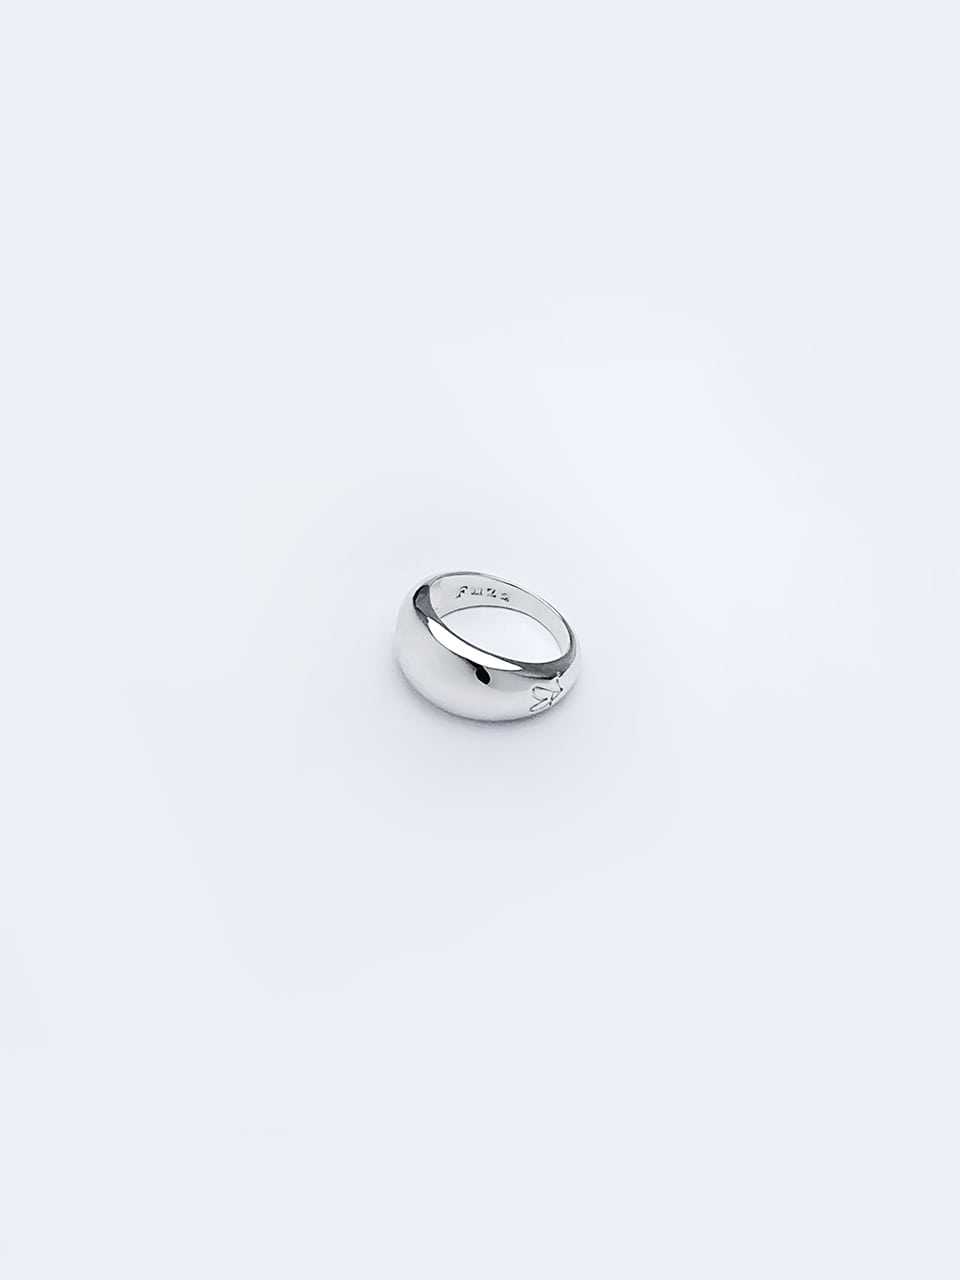 DOME RING (10mm) 돔 반지 10mm